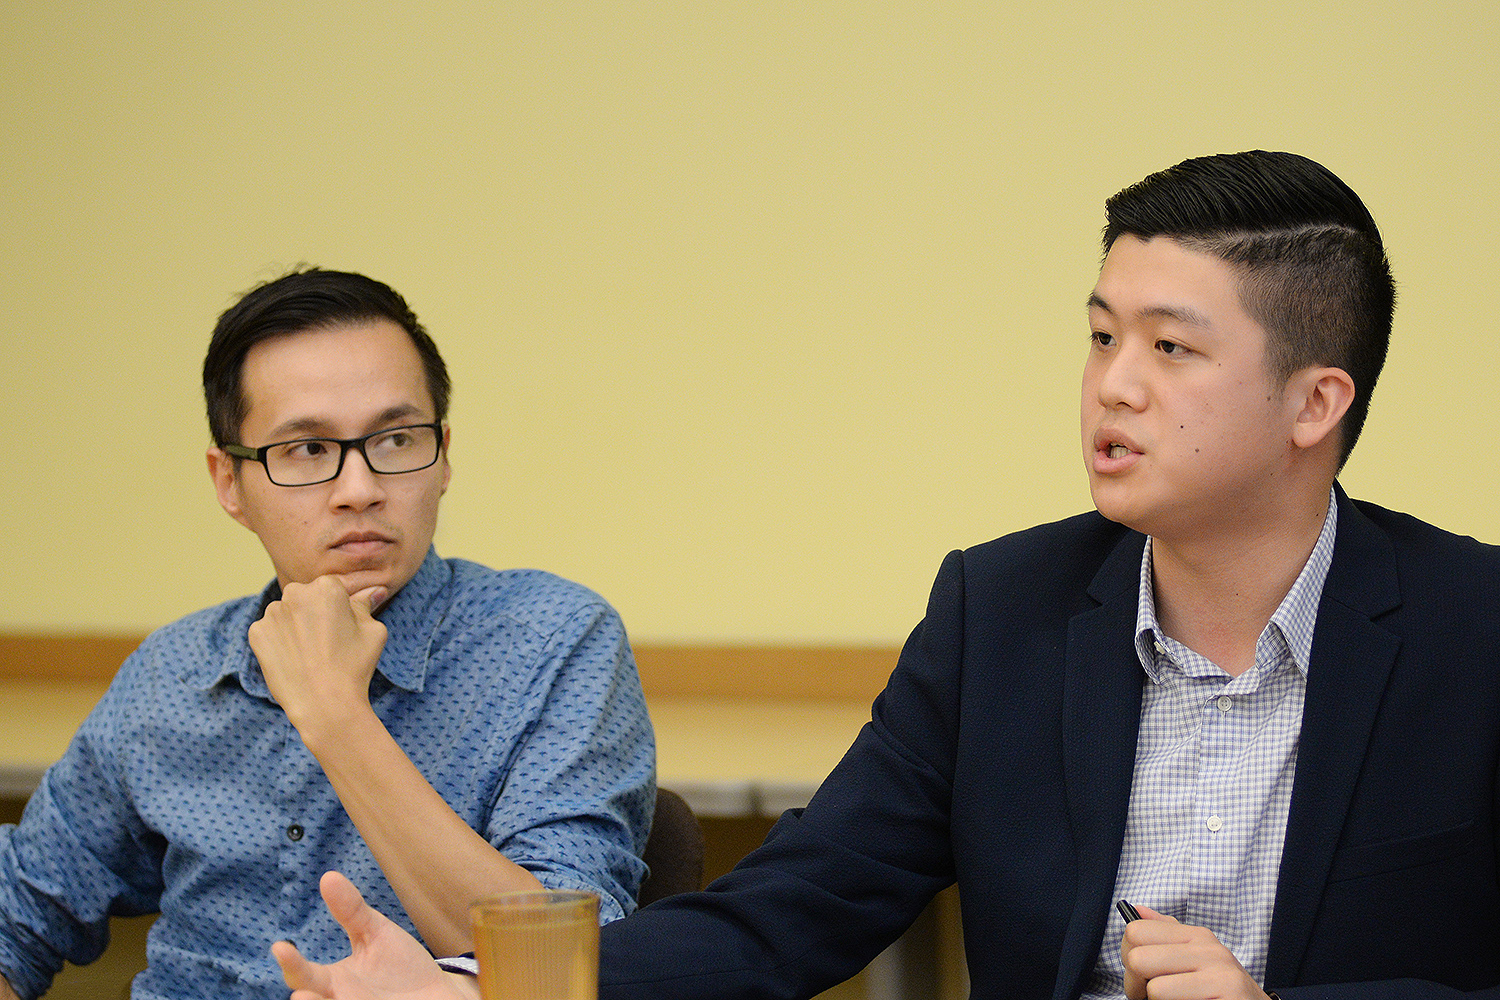 Long Bui, visiting assistant professor of American studies, and Alton Wang '15 moderated the discussion. While at Wesleyan, Wang studied sociology and government, chaired the Asian American Student Collective and taught a course on Asian American history. He currently works in Washington D.C. engaging voters at Asian and Pacific Islander American Vote and serves on the Board of Directors for the Conference on Asian Pacific American Leadership.